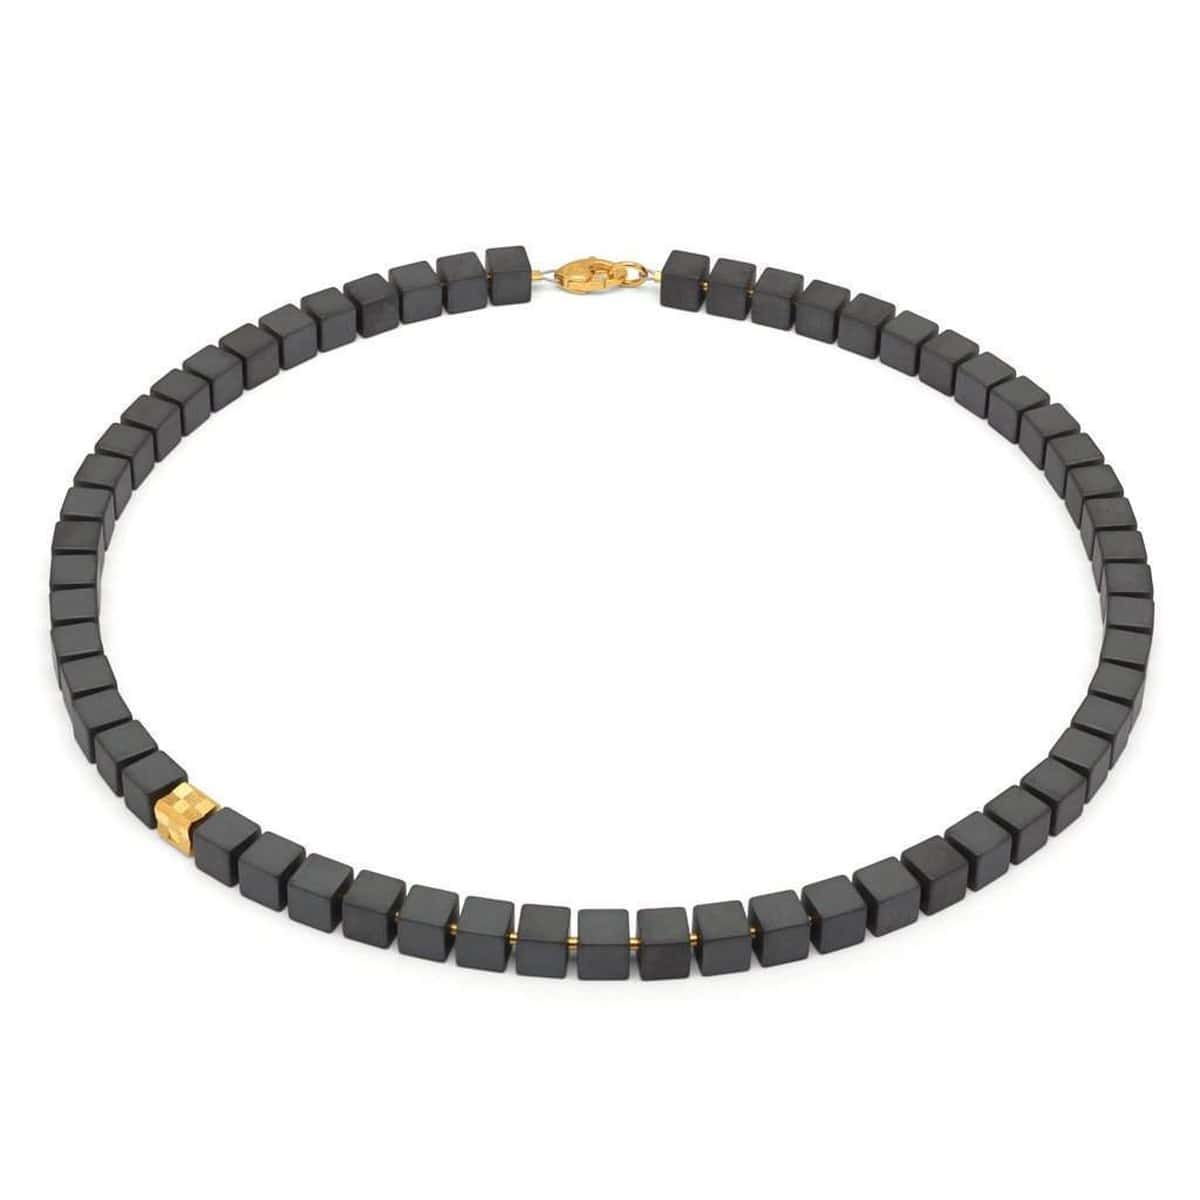 Weluno Hematite Necklace - 84431276